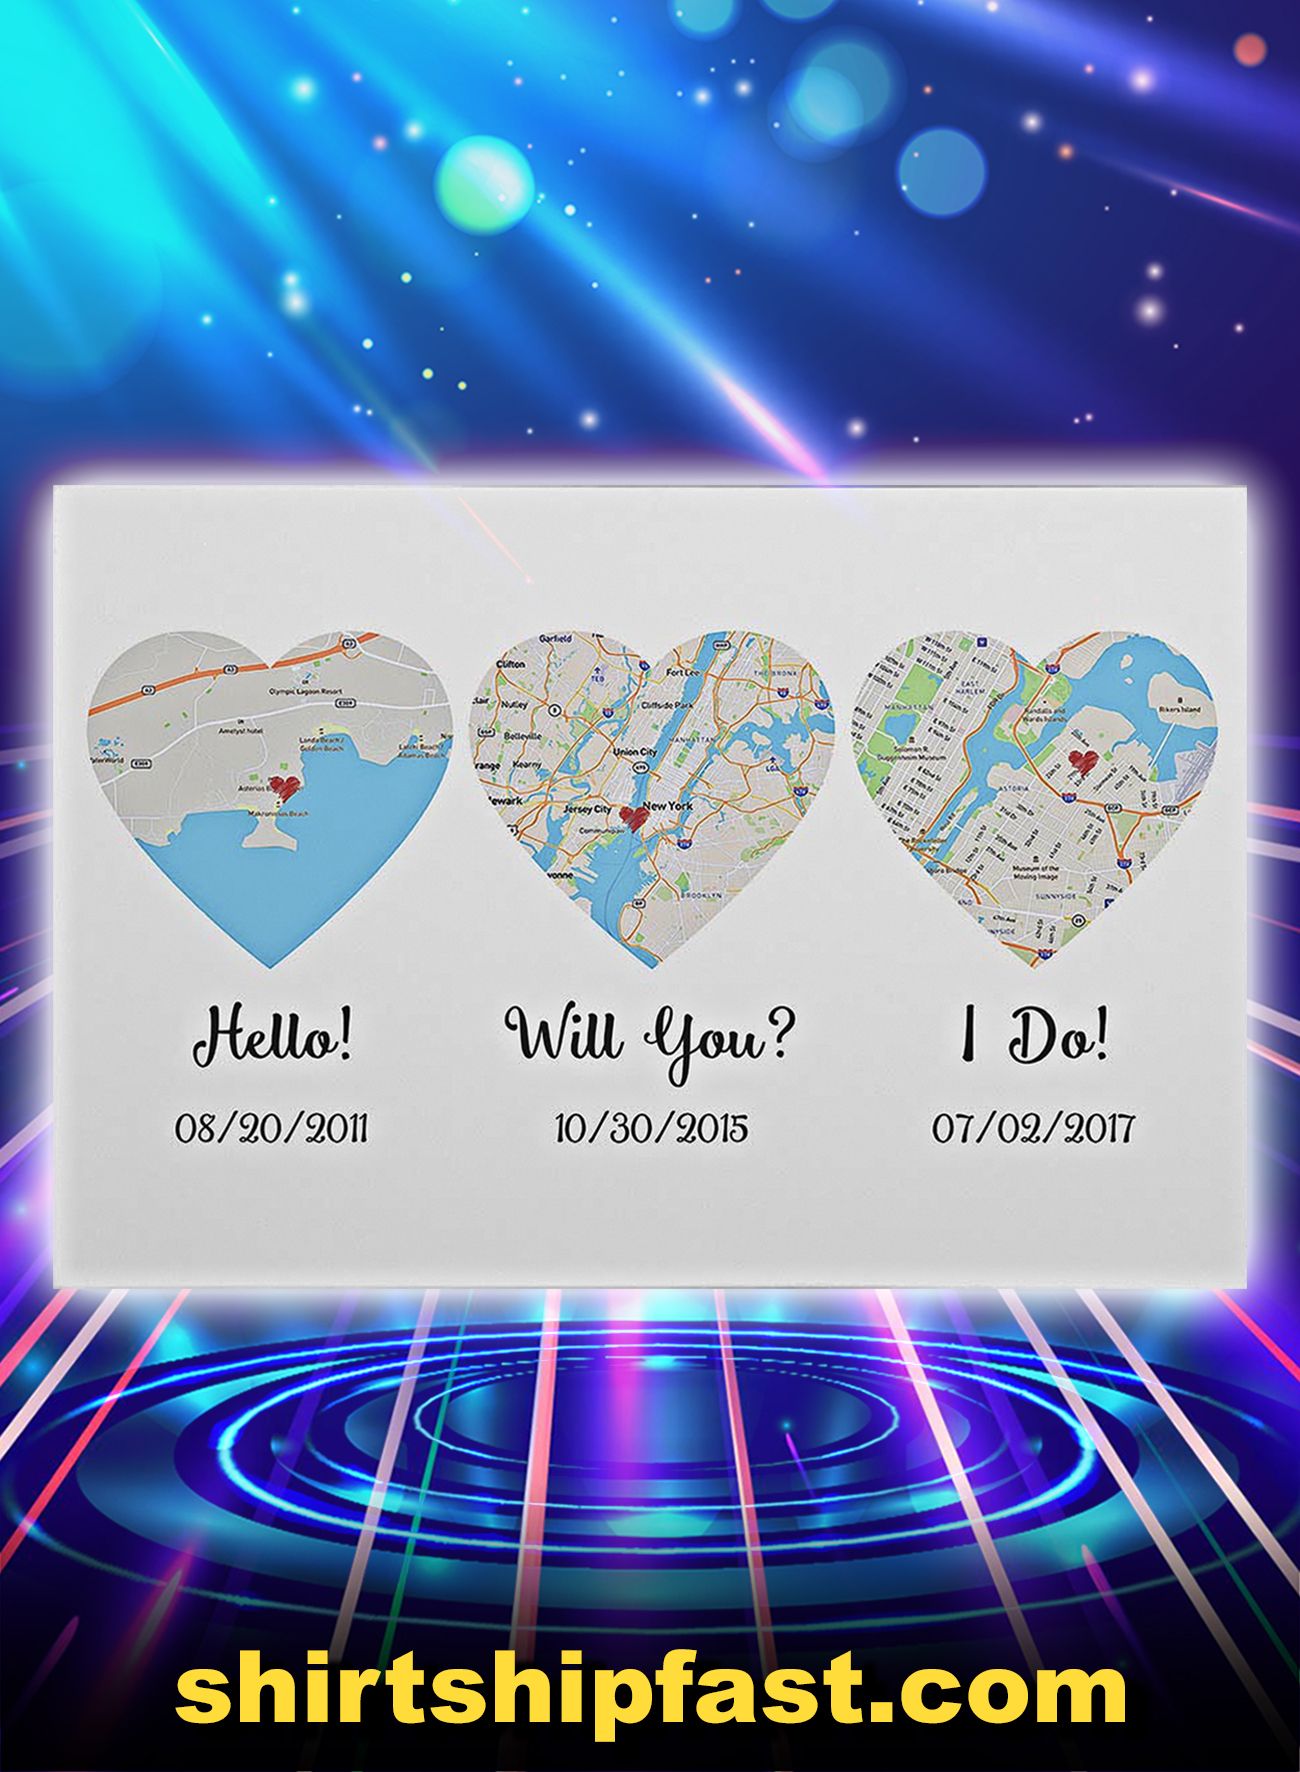 Map hello will you i do poster - A1